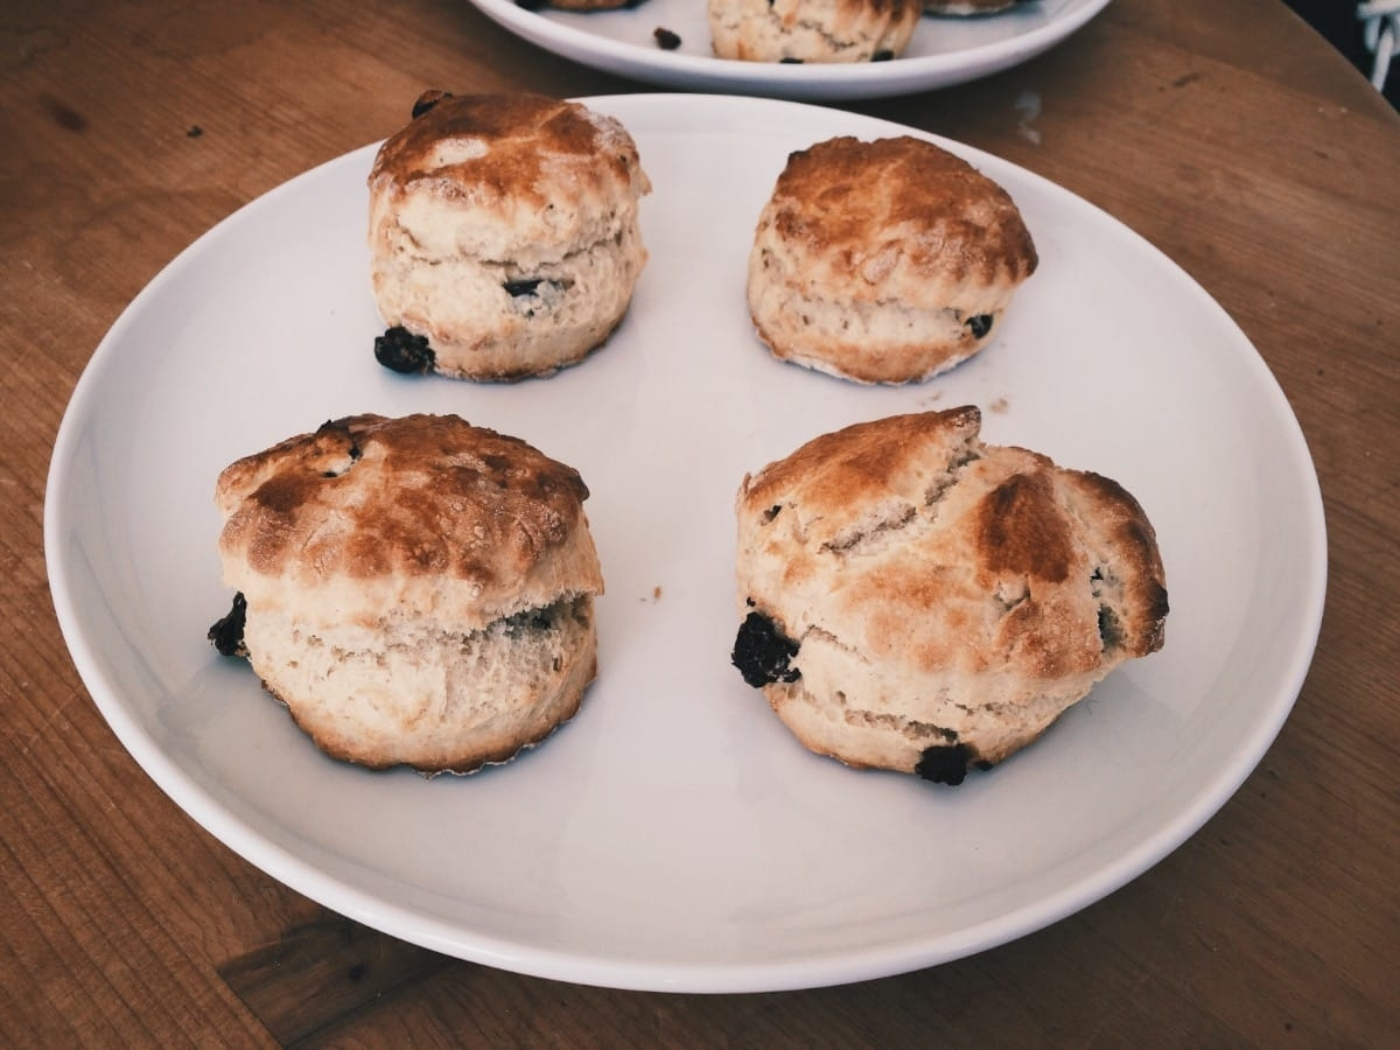 Scones second